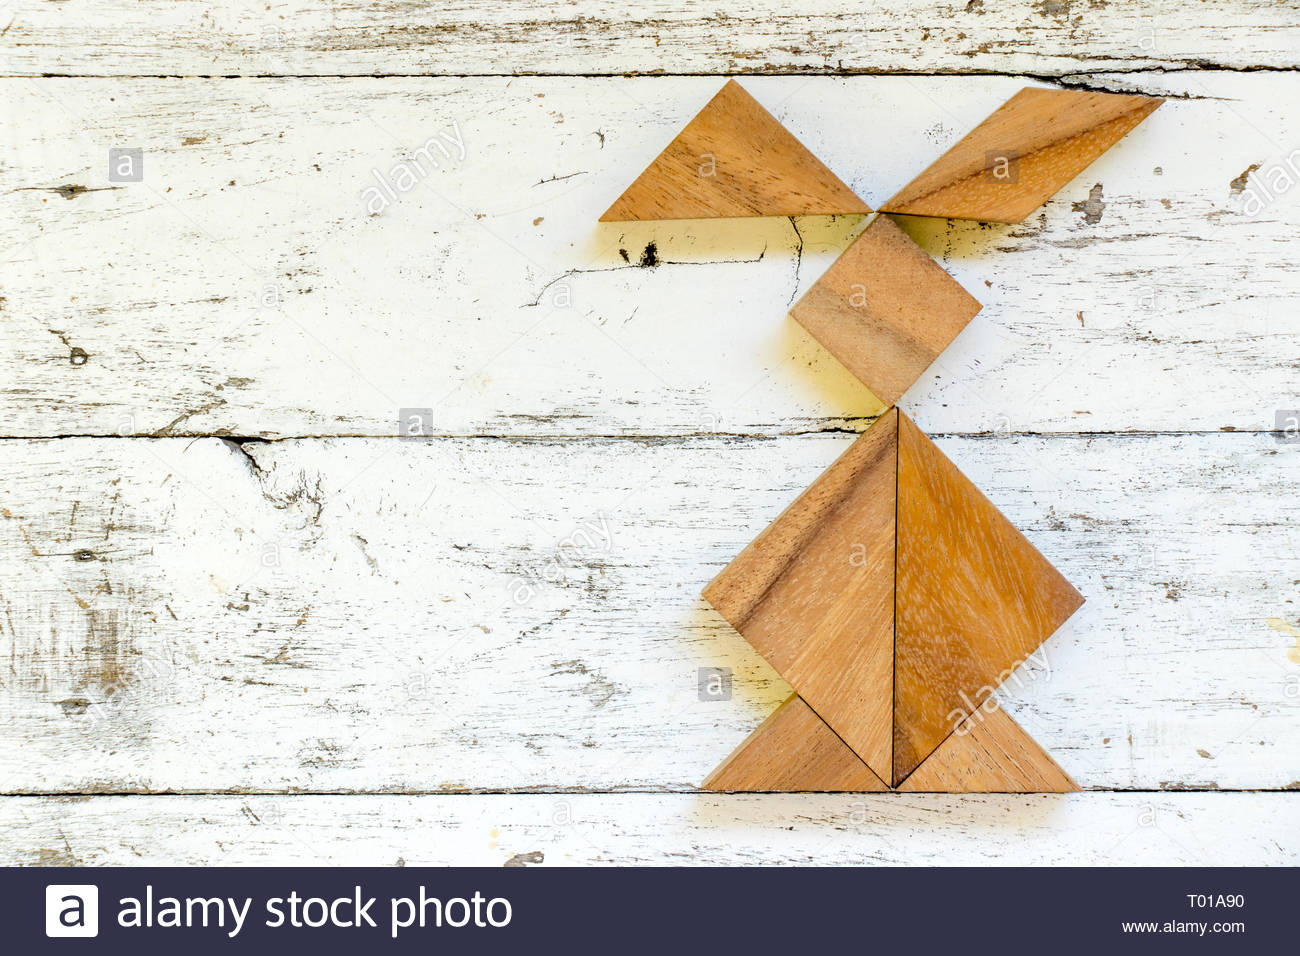 Chinese Puzzle Children Stock Photos & Chinese Puzzle avec Tangram Lapin